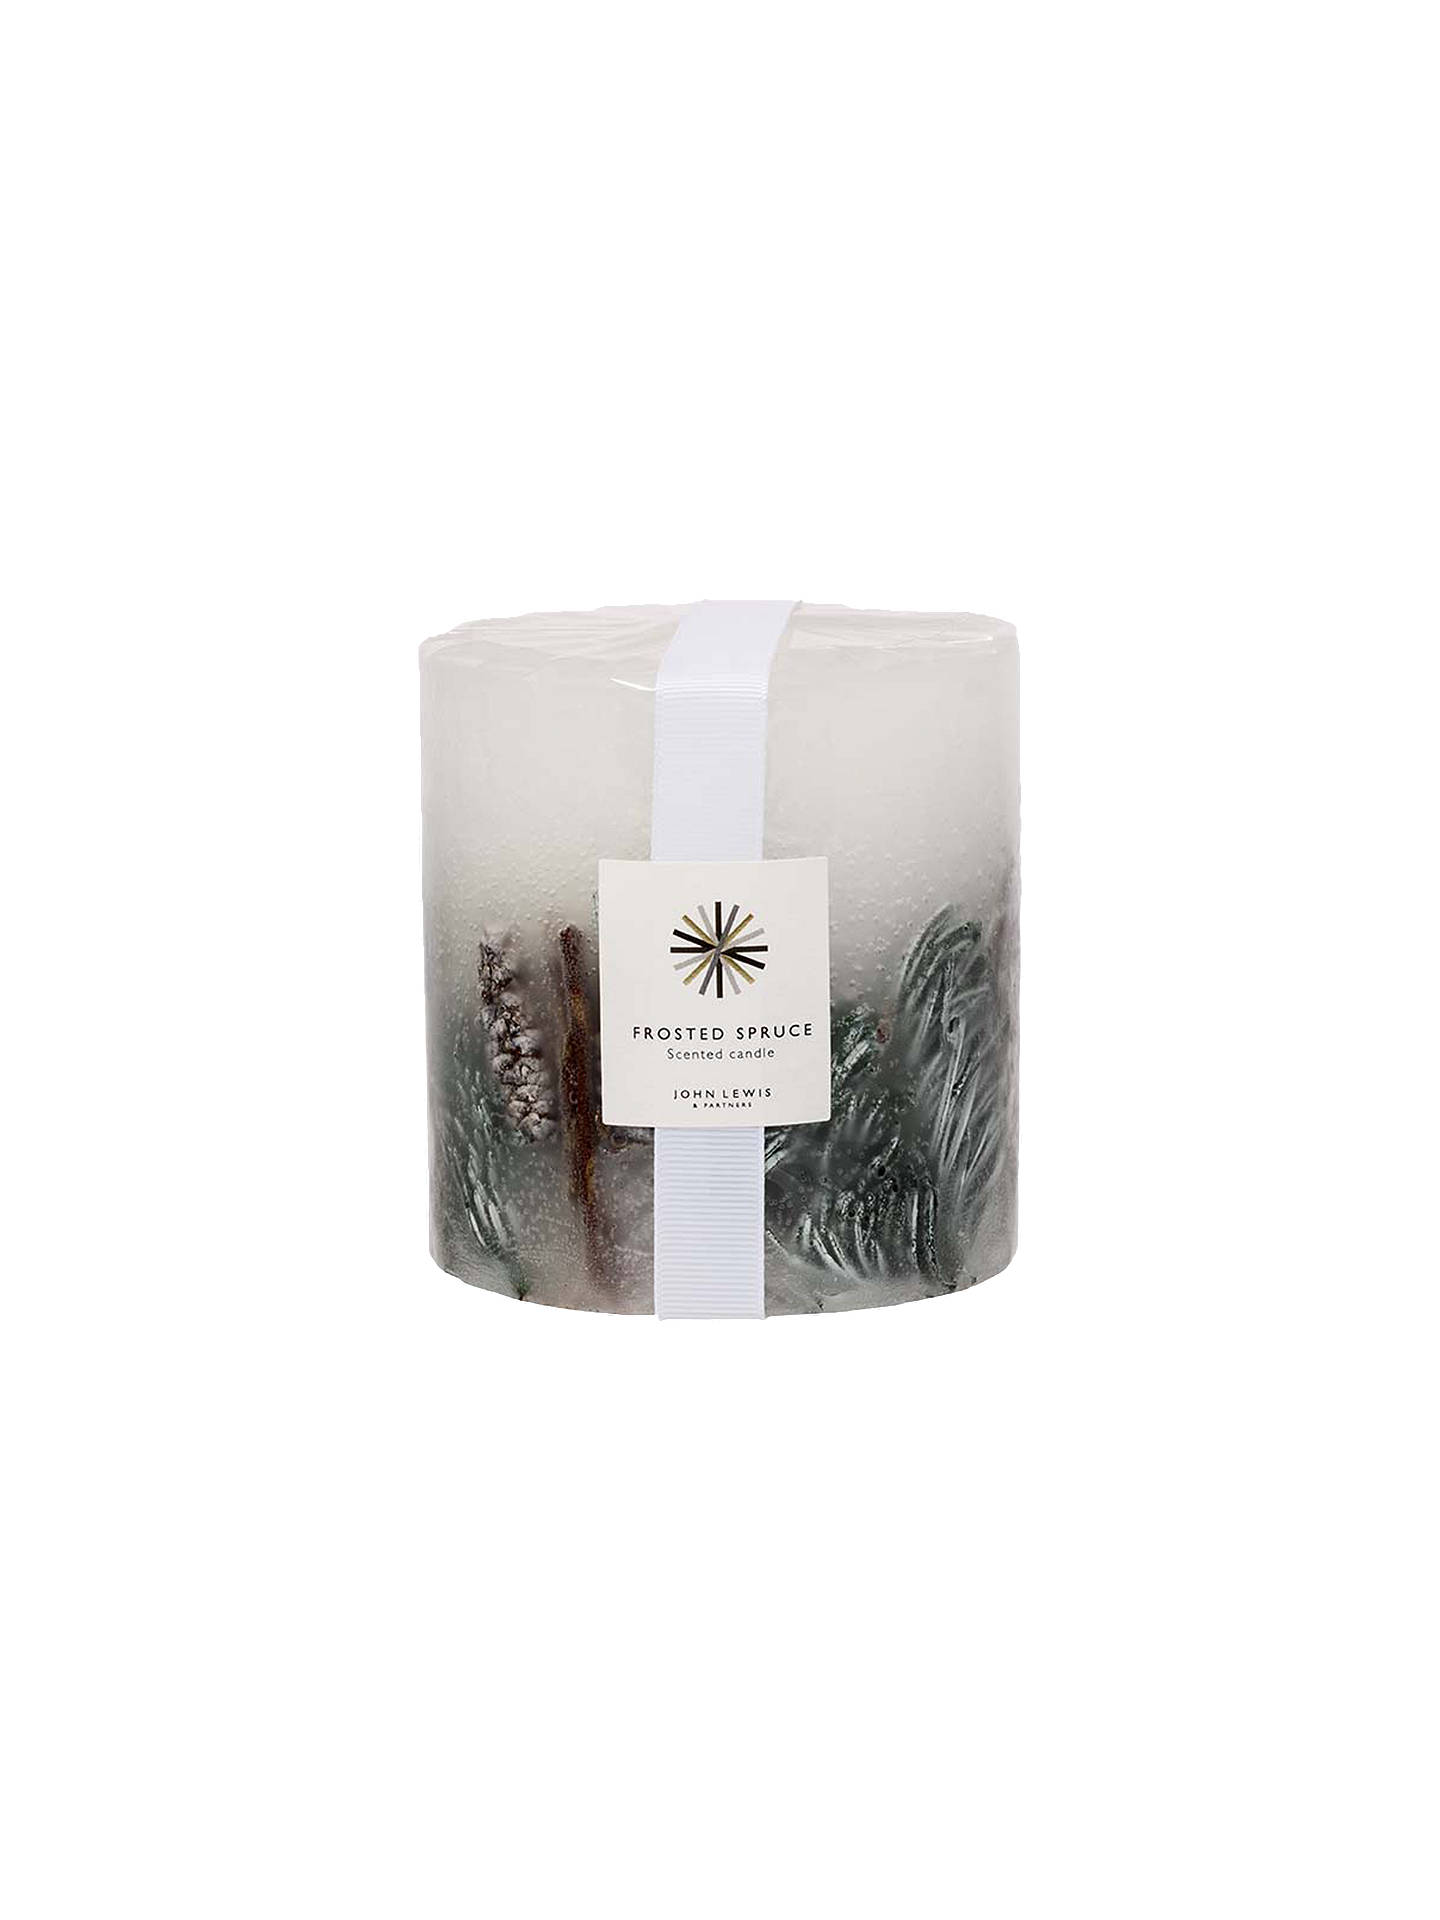 BuyJohn Lewis & Partners Frosted Spruce Inclusions Scented Candle, 586g Online at johnlewis.com